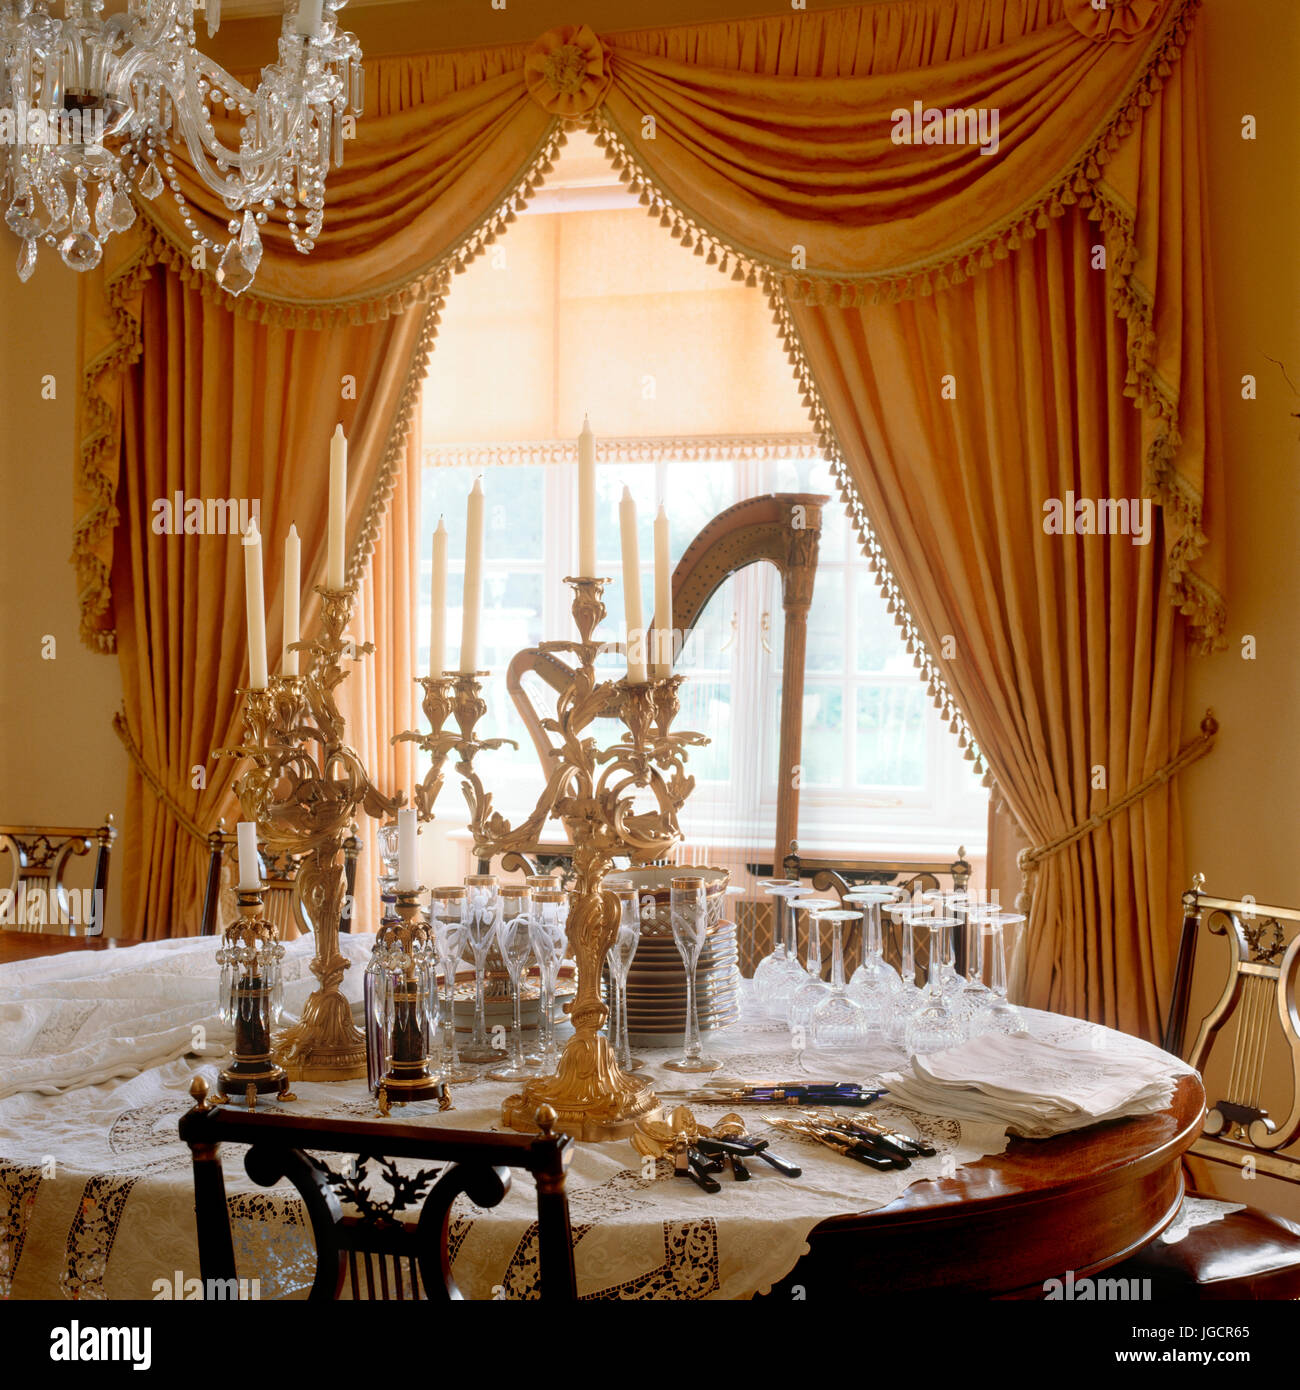 Opulent dining room with open curtains - Stock Image